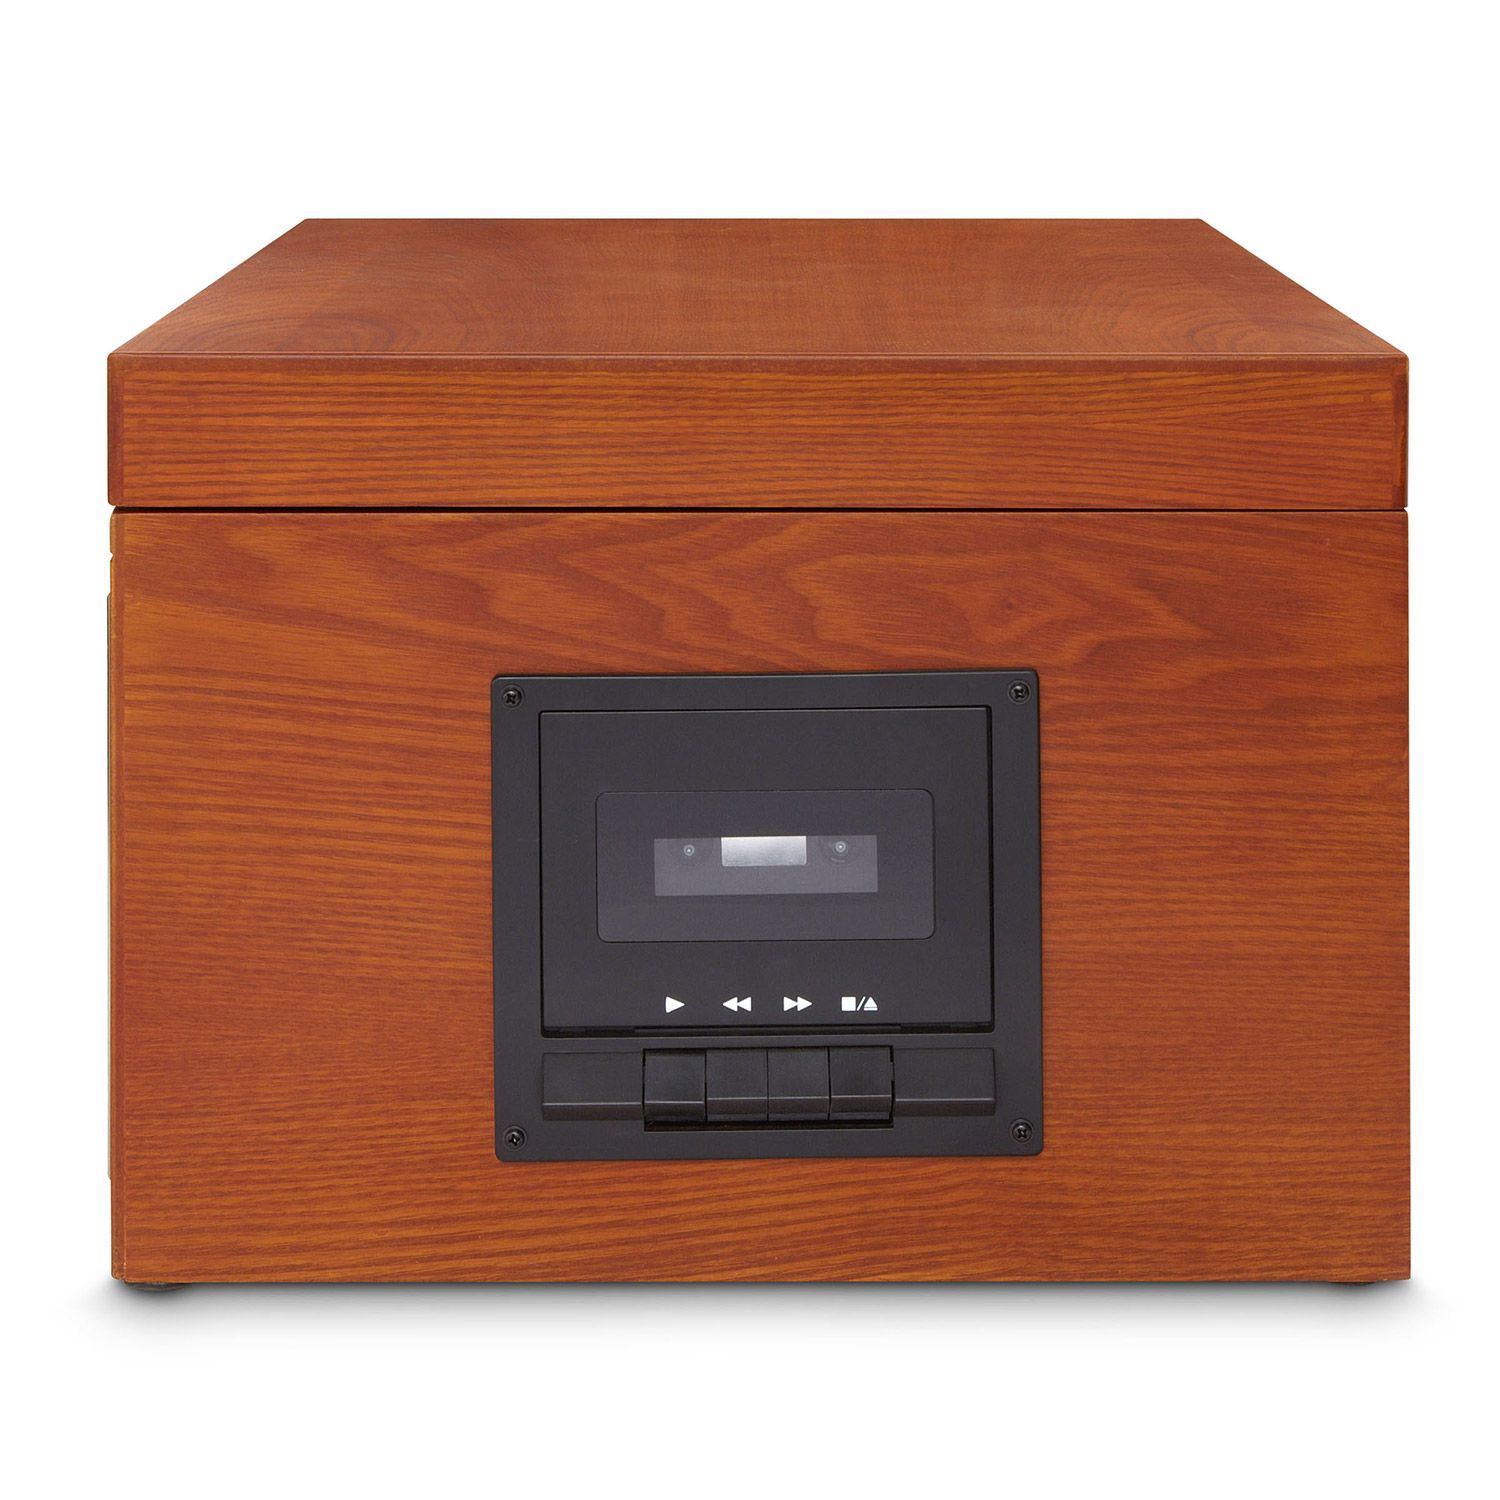 Picture of Memory Master Ii Cd Recorder, Pine *D